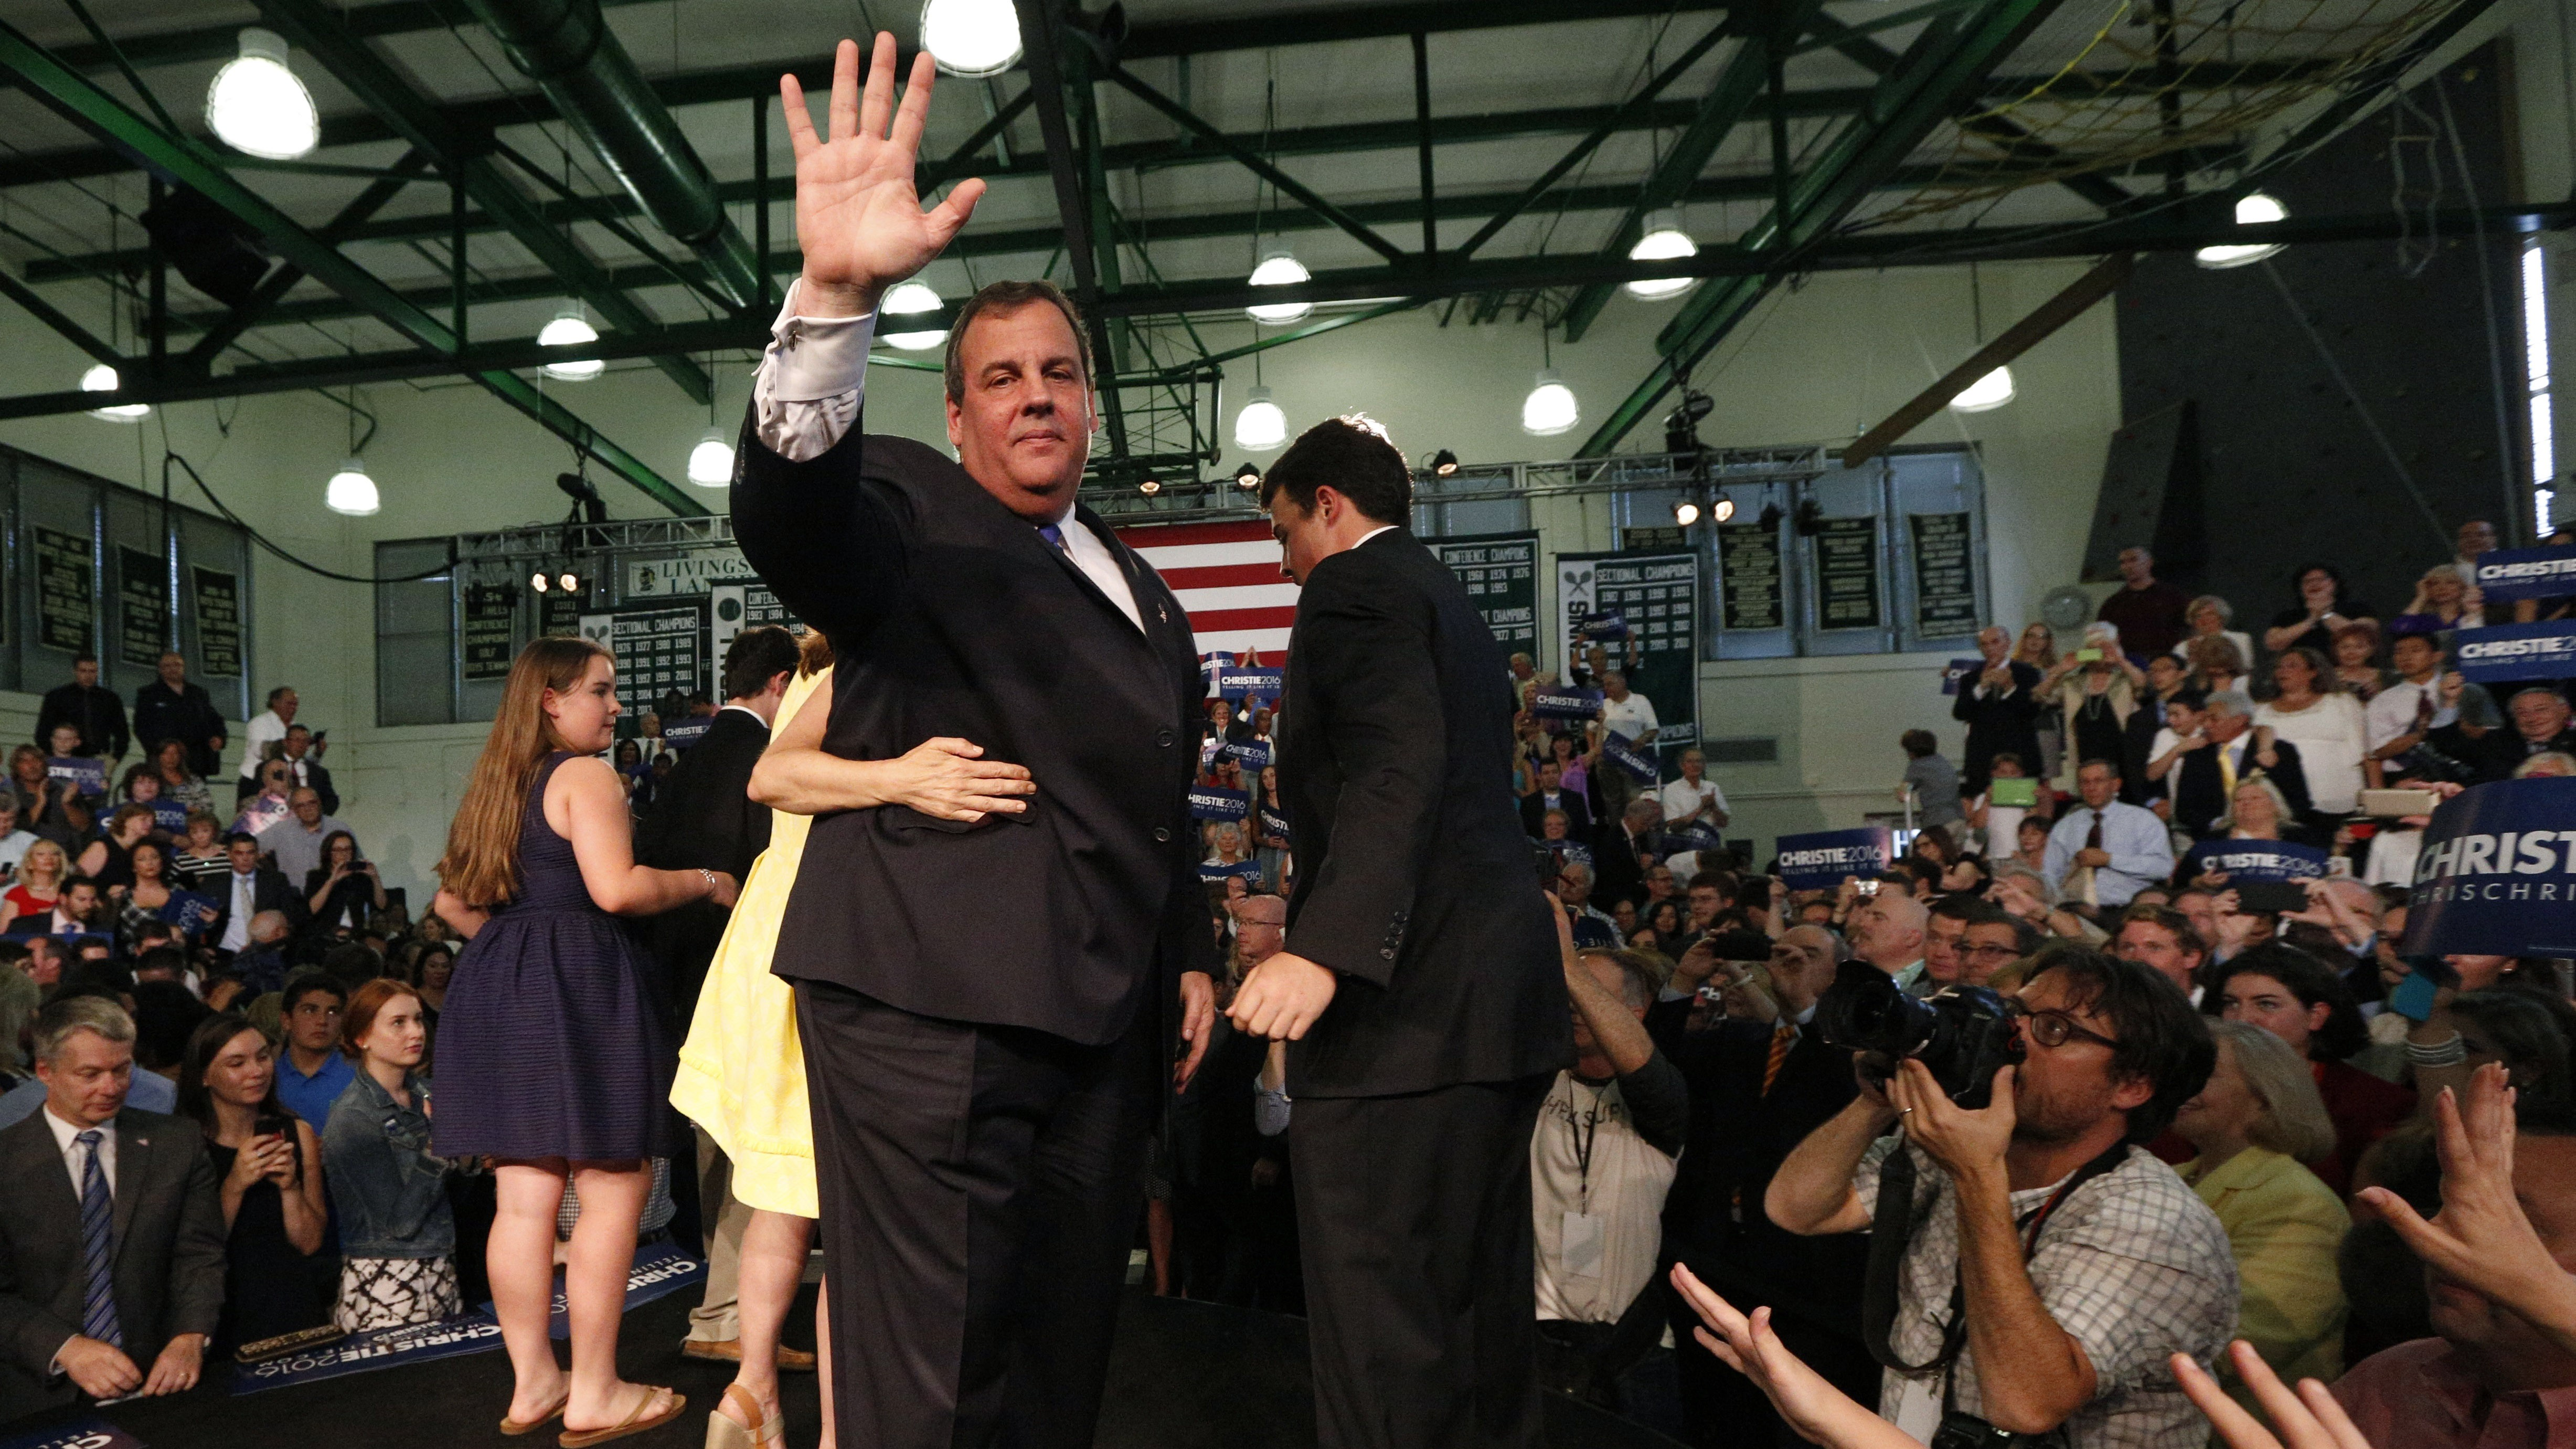 Republican U.S. presidential candidate and New Jersey Governor Chris Christie waves after formally announcing his campaign for the 2016 Republican presidential nomination during a kickoff rally at Livingston High School in Livingston, New Jersey, June 30, 2015.